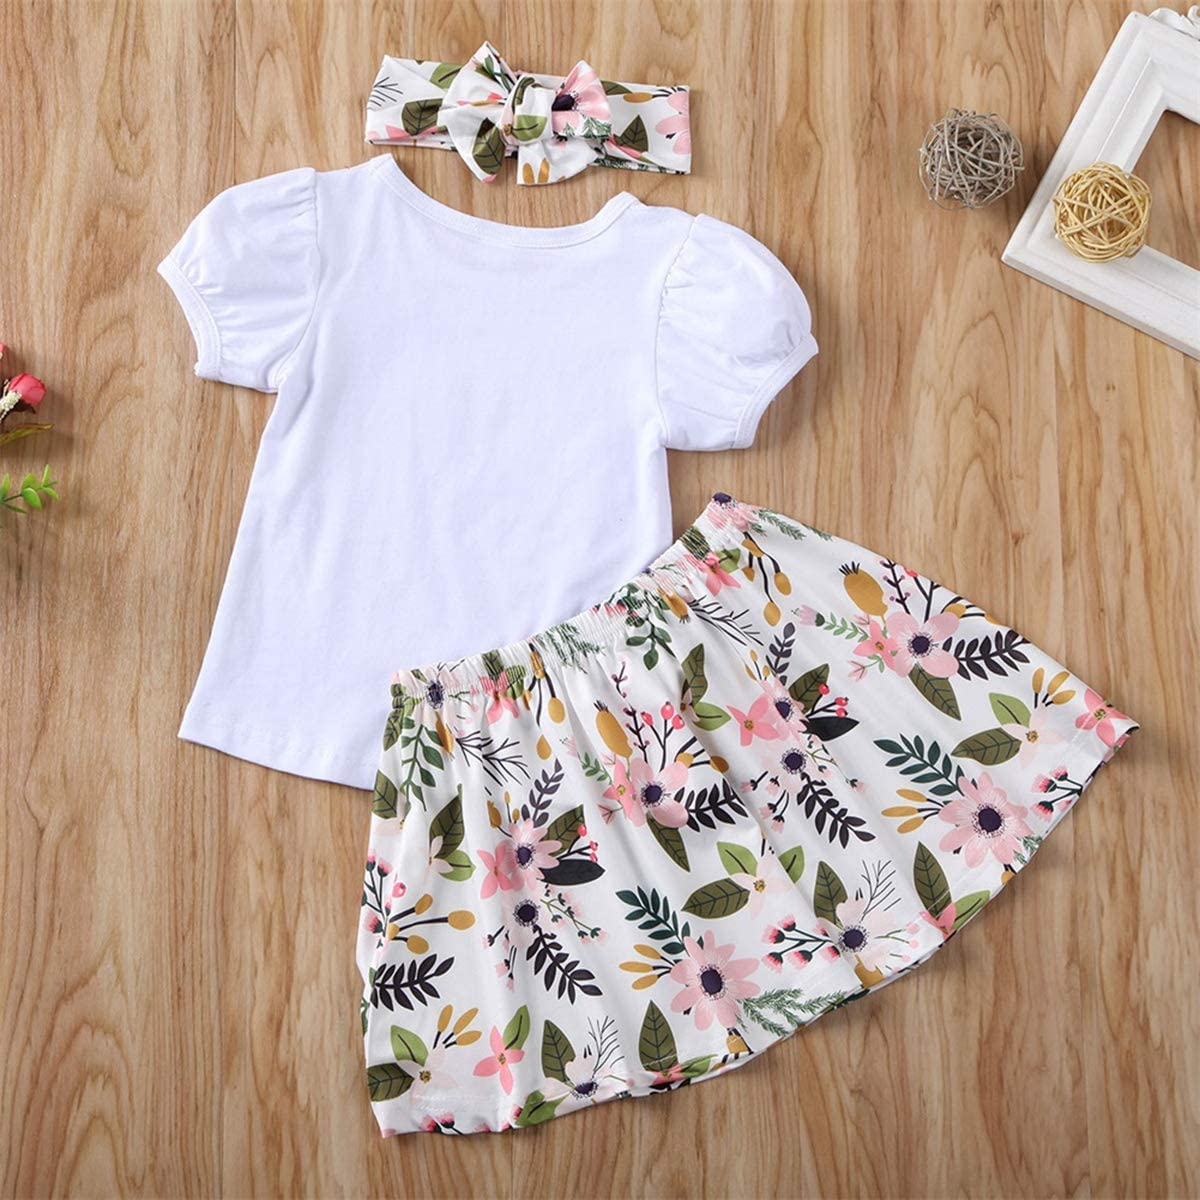 DaMohony Baby Girls Big Littler Sisters Matching Outfits Newborn Toddler Kid Girls Floral Clothes Set